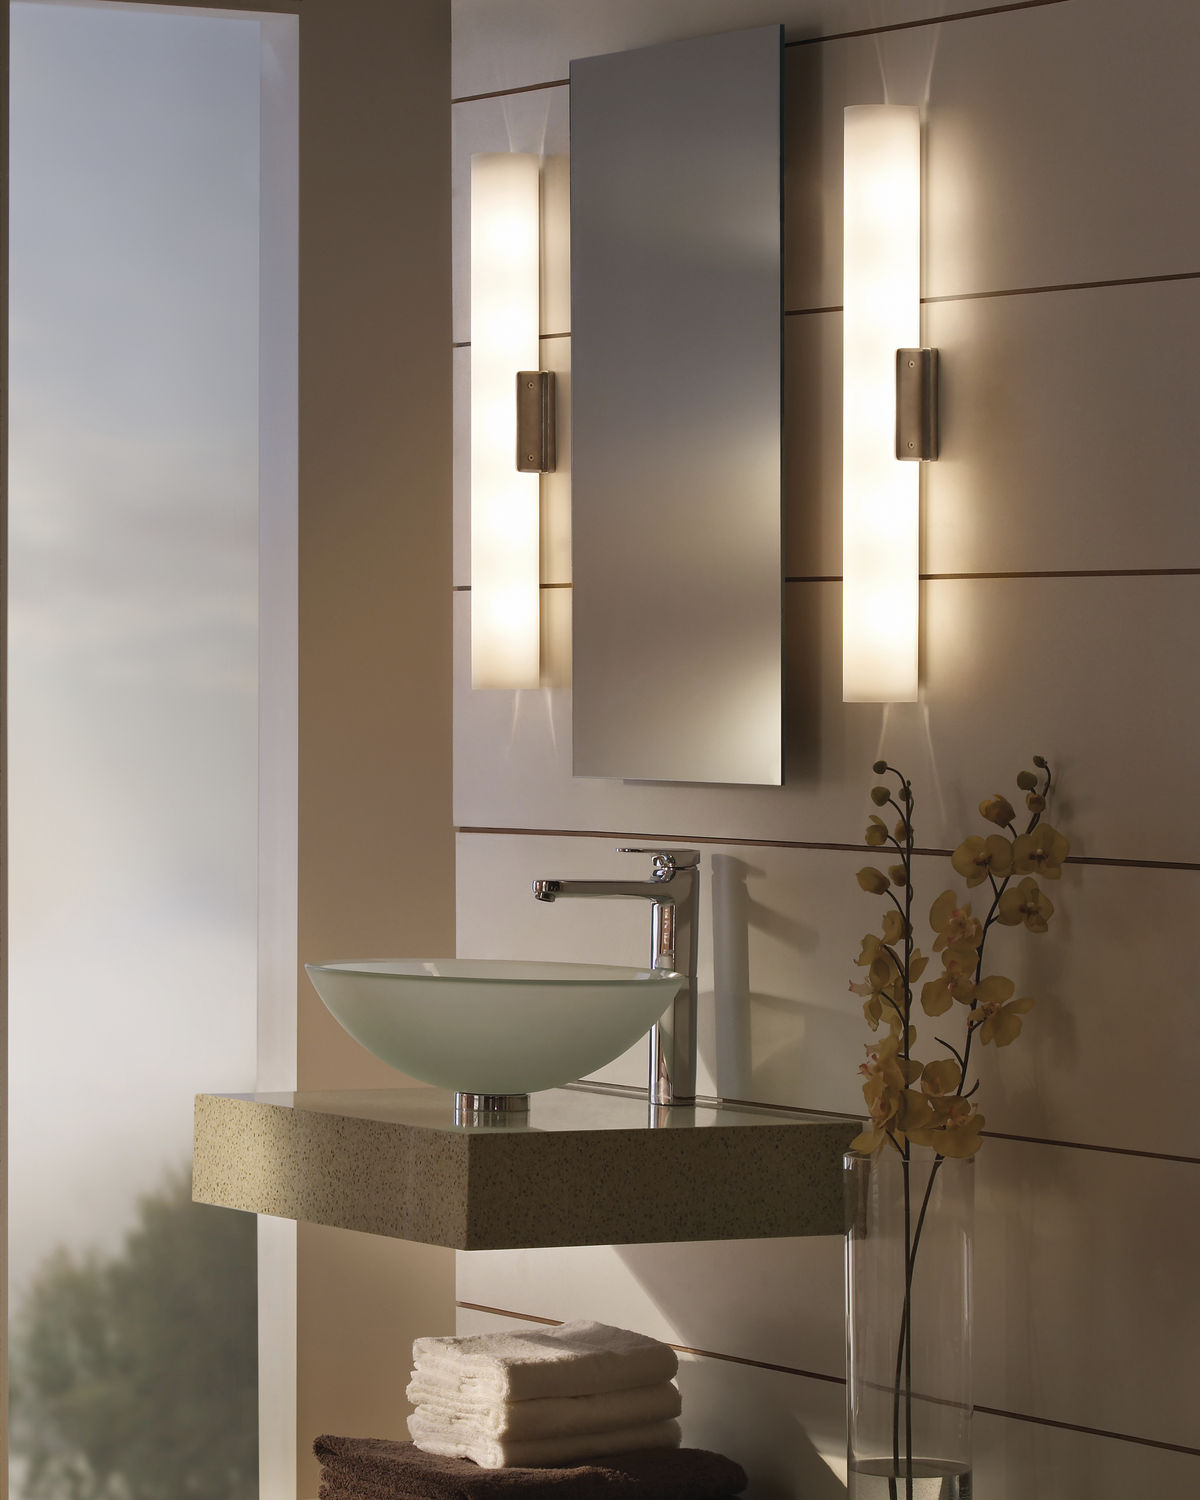 Contemporary Wall Light Bathroom Glass For Mirrors